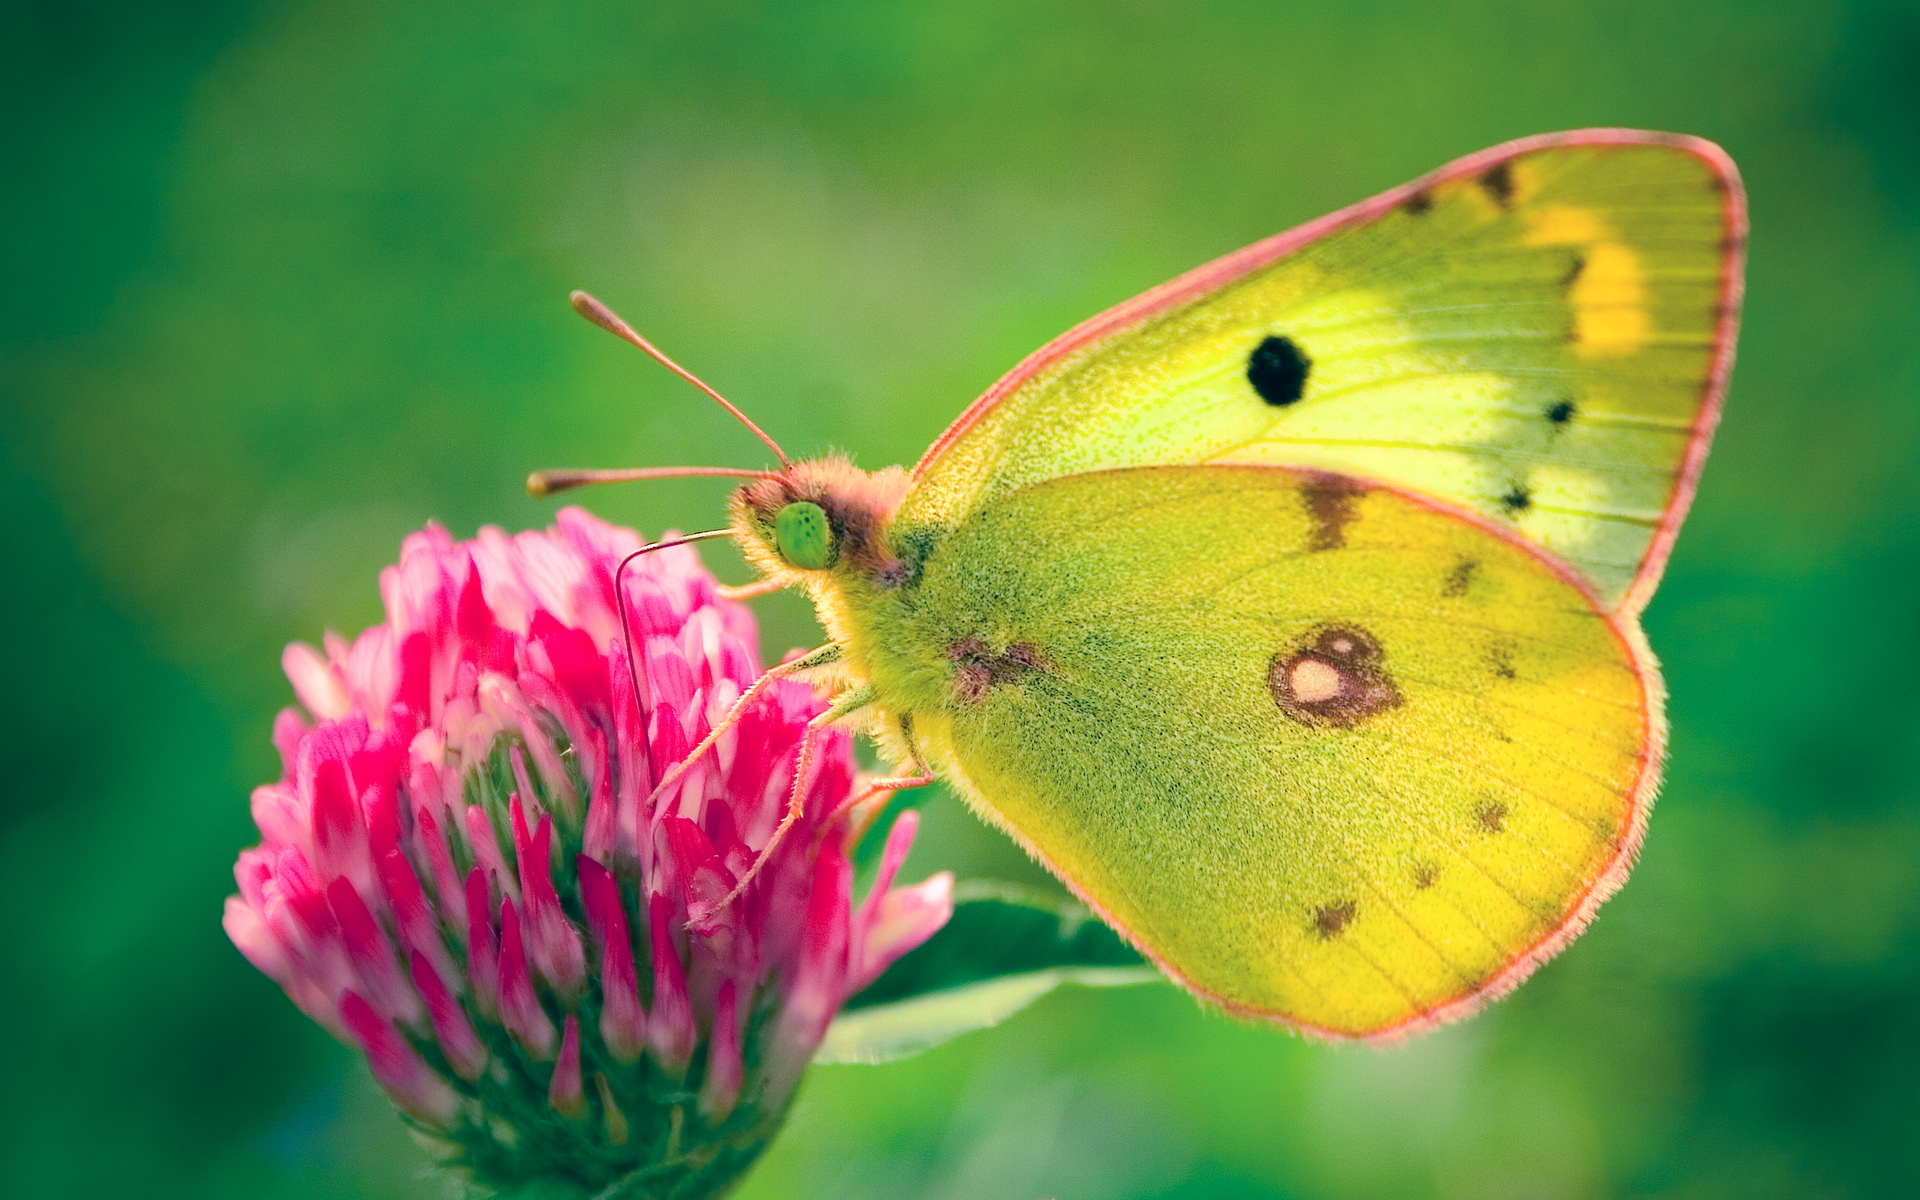 Colias Hyale Butterfly photo hd